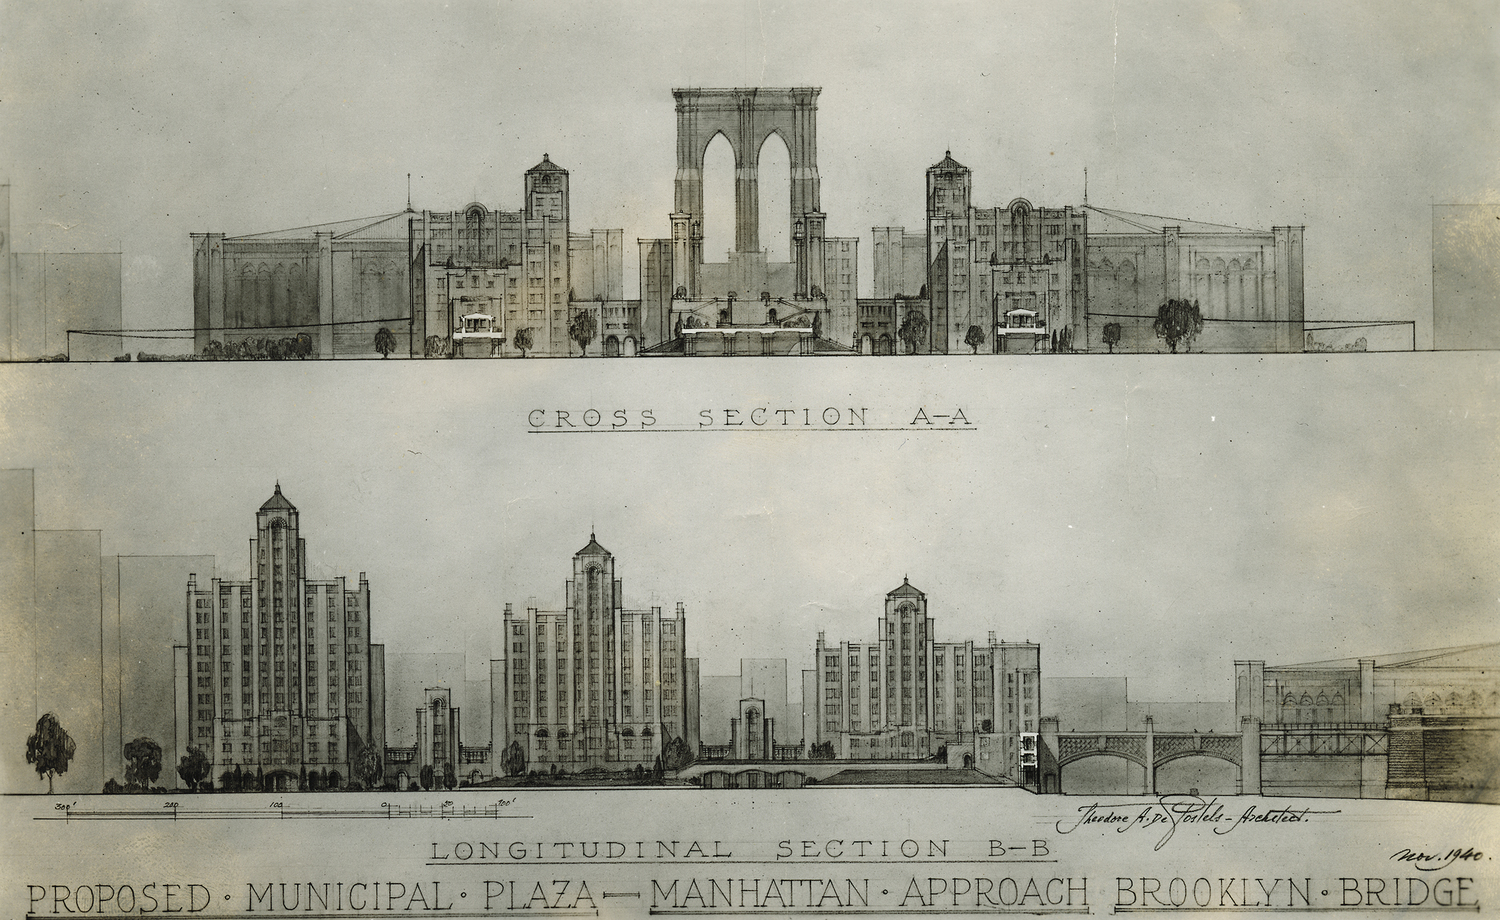 Cross section and Longitudinal section, Proposed Municipal Plaza - Manhattan Approach - Brooklyn Bridge, Theodore De Postels, 1940